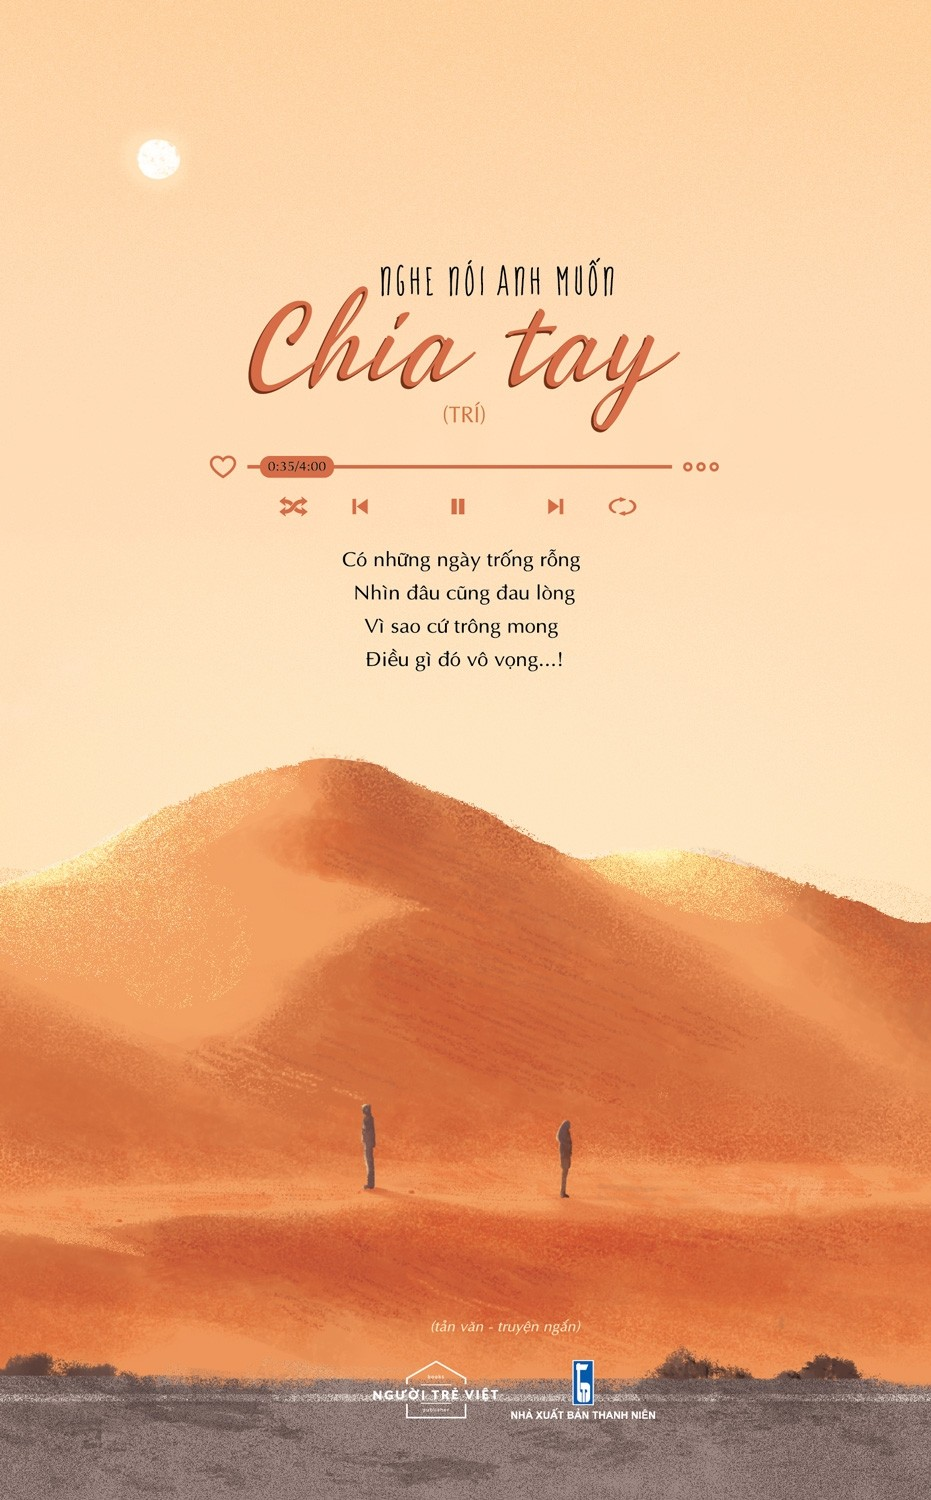 nghe noi anh muon chia tay